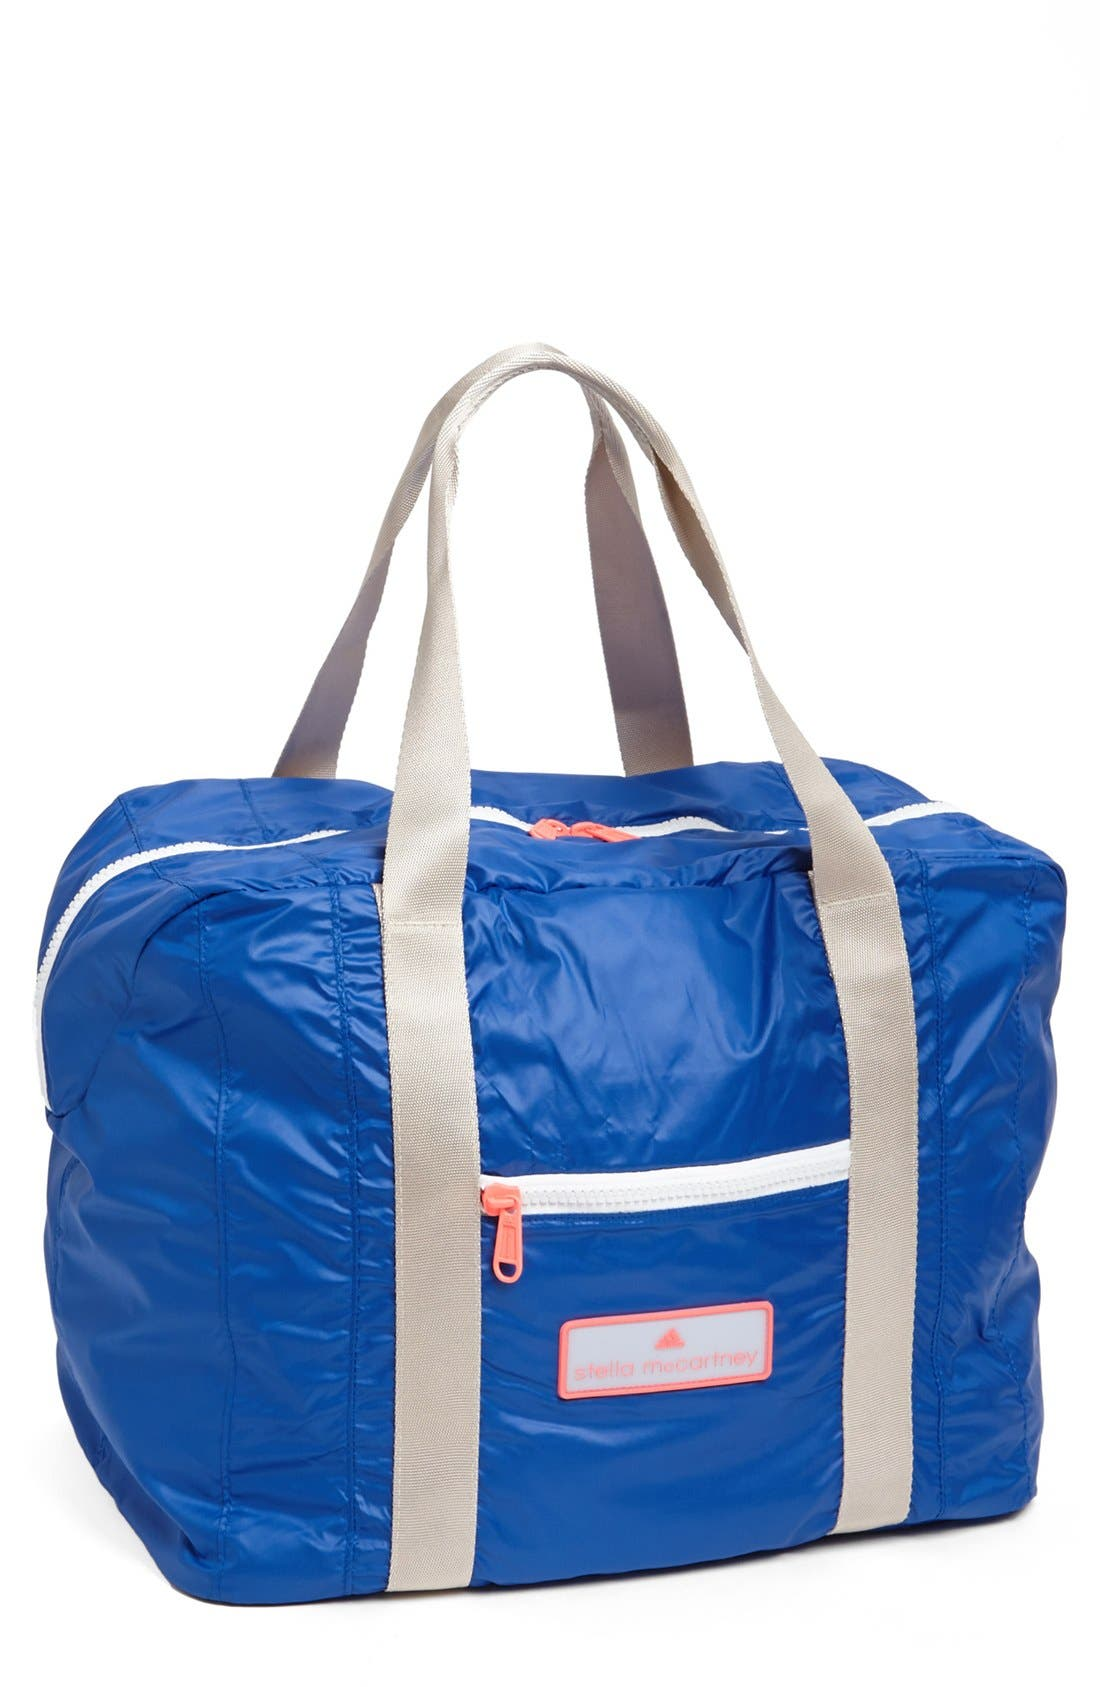 Alternate Image 1 Selected - adidas by Stella McCartney 'Big Carry On' Bag